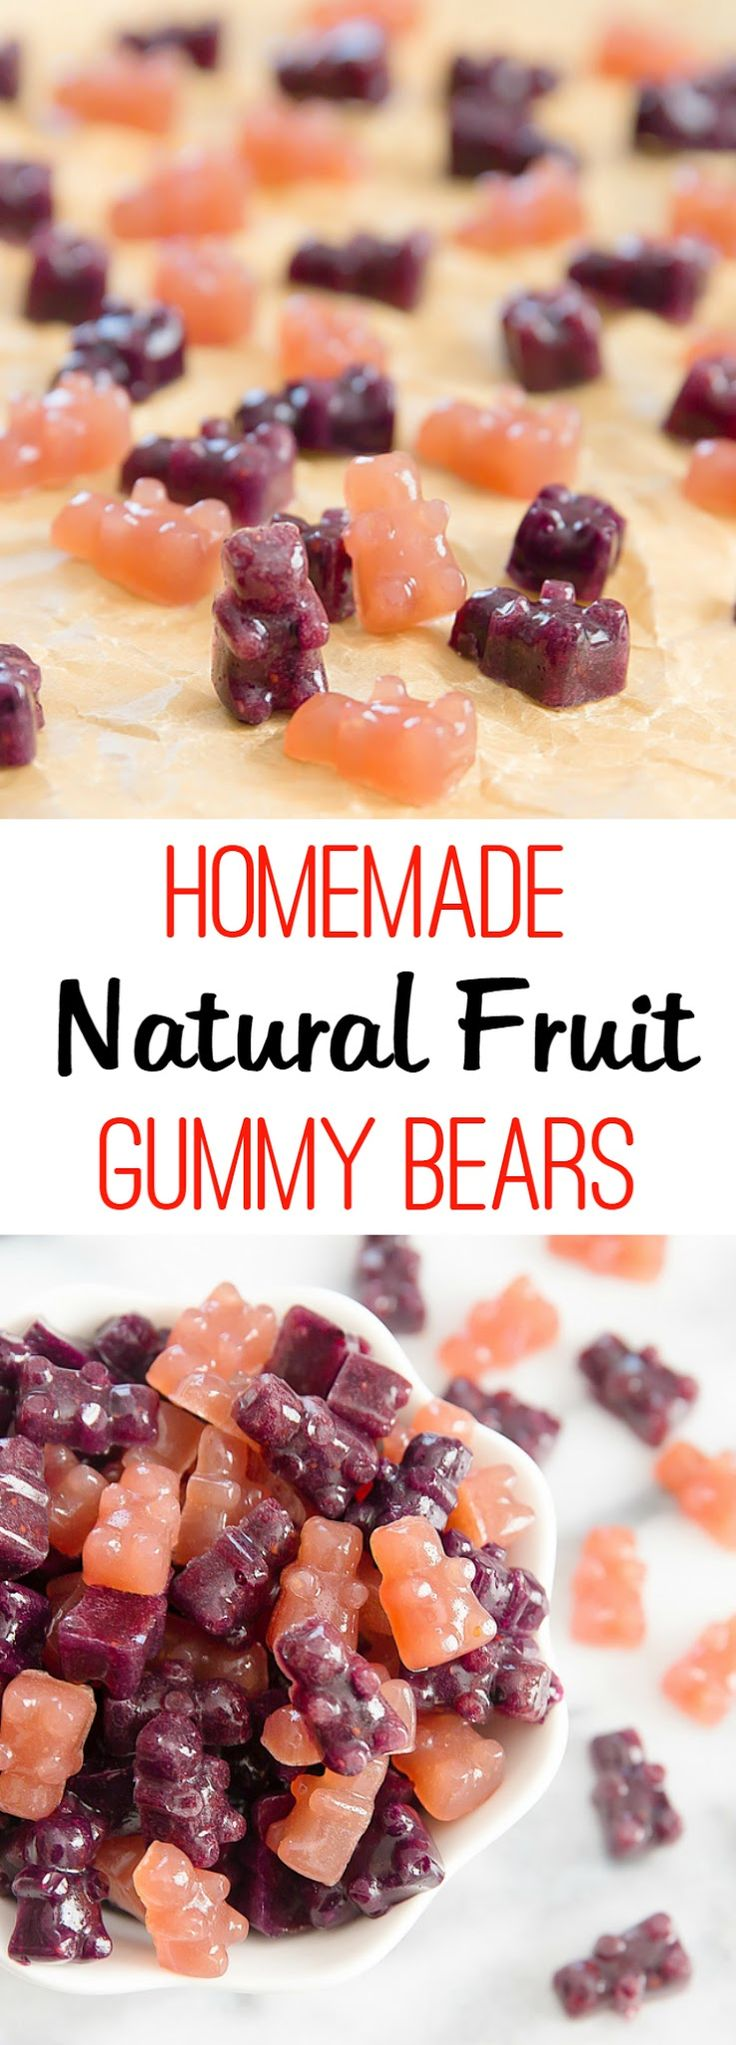 Homemade Gummy Bears or Fruit Snacks. Easy to make, naturally flavored and colored with fruit. Much healthier than store bought!